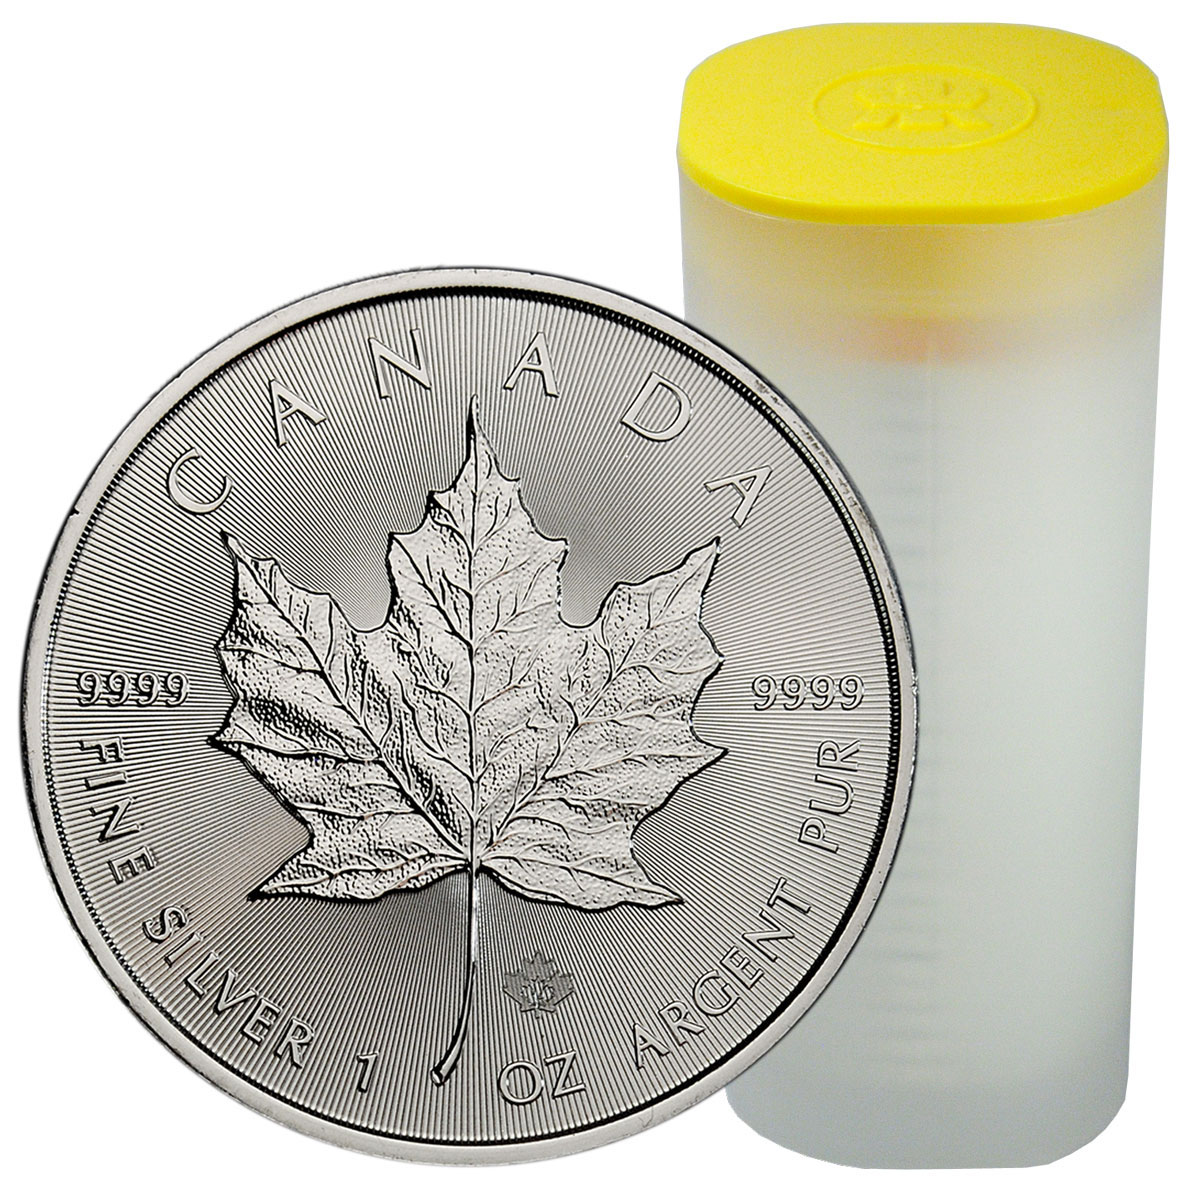 Roll of 25 - 2021 Canada 1 oz Silver Maple Leaf $5 Coins GEM BU